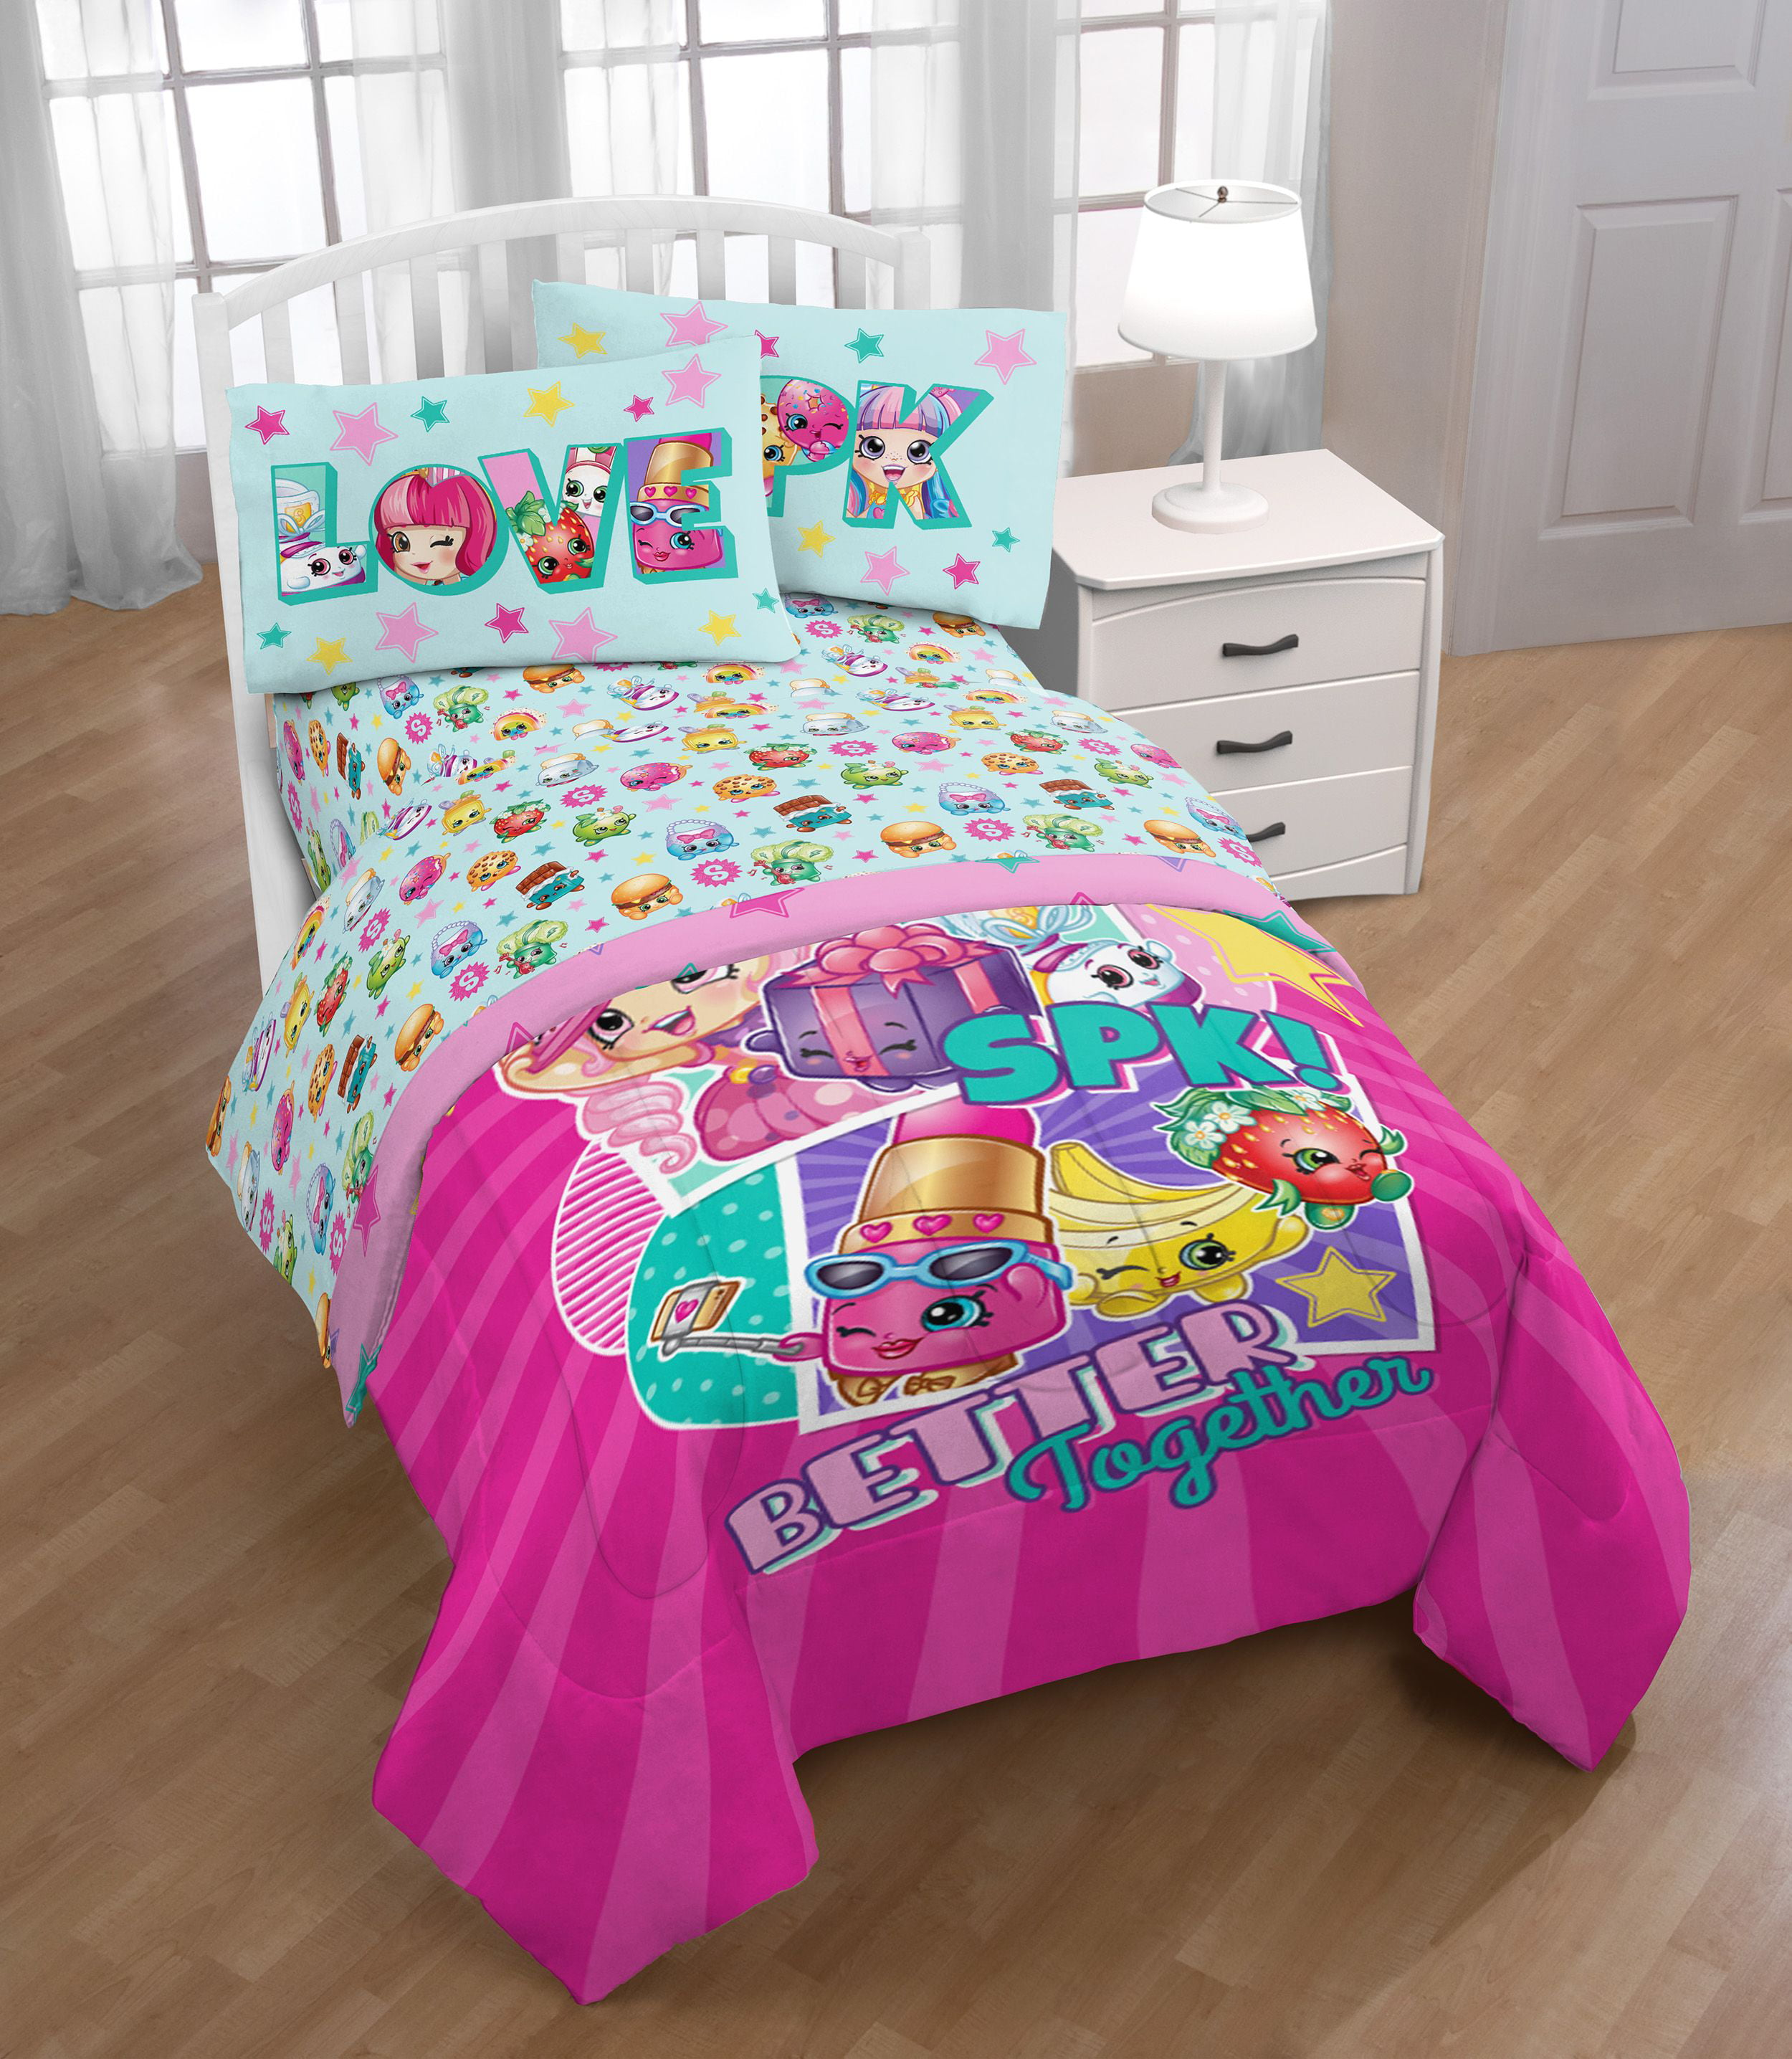 Shopkins 'Better Together' Full Sheet Set